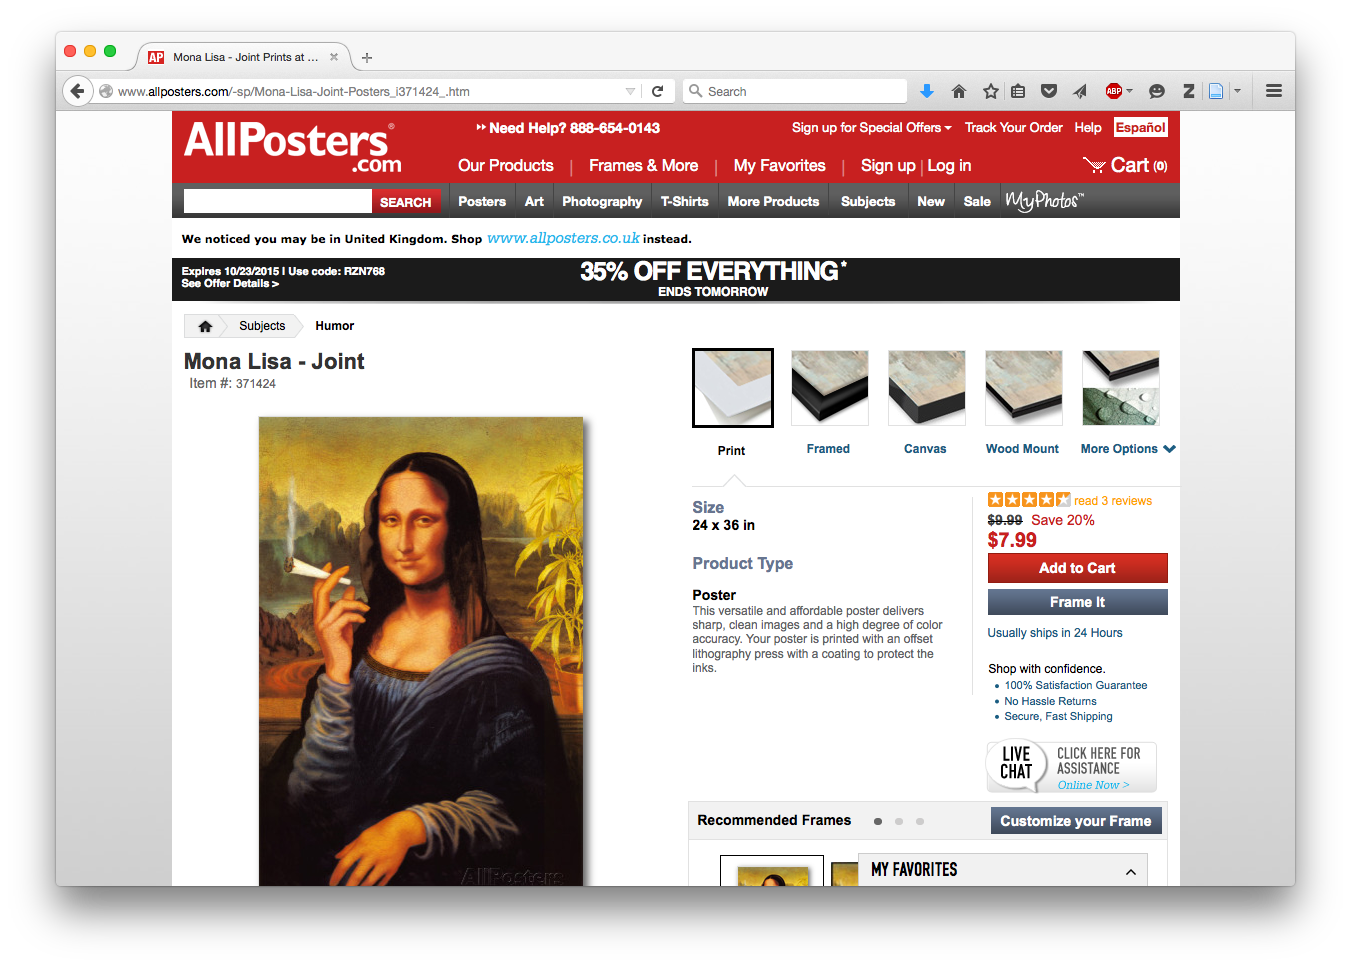 http://www.allposters.com/-sp/Mona-Lisa-Joint-Posters_i371424_.htm